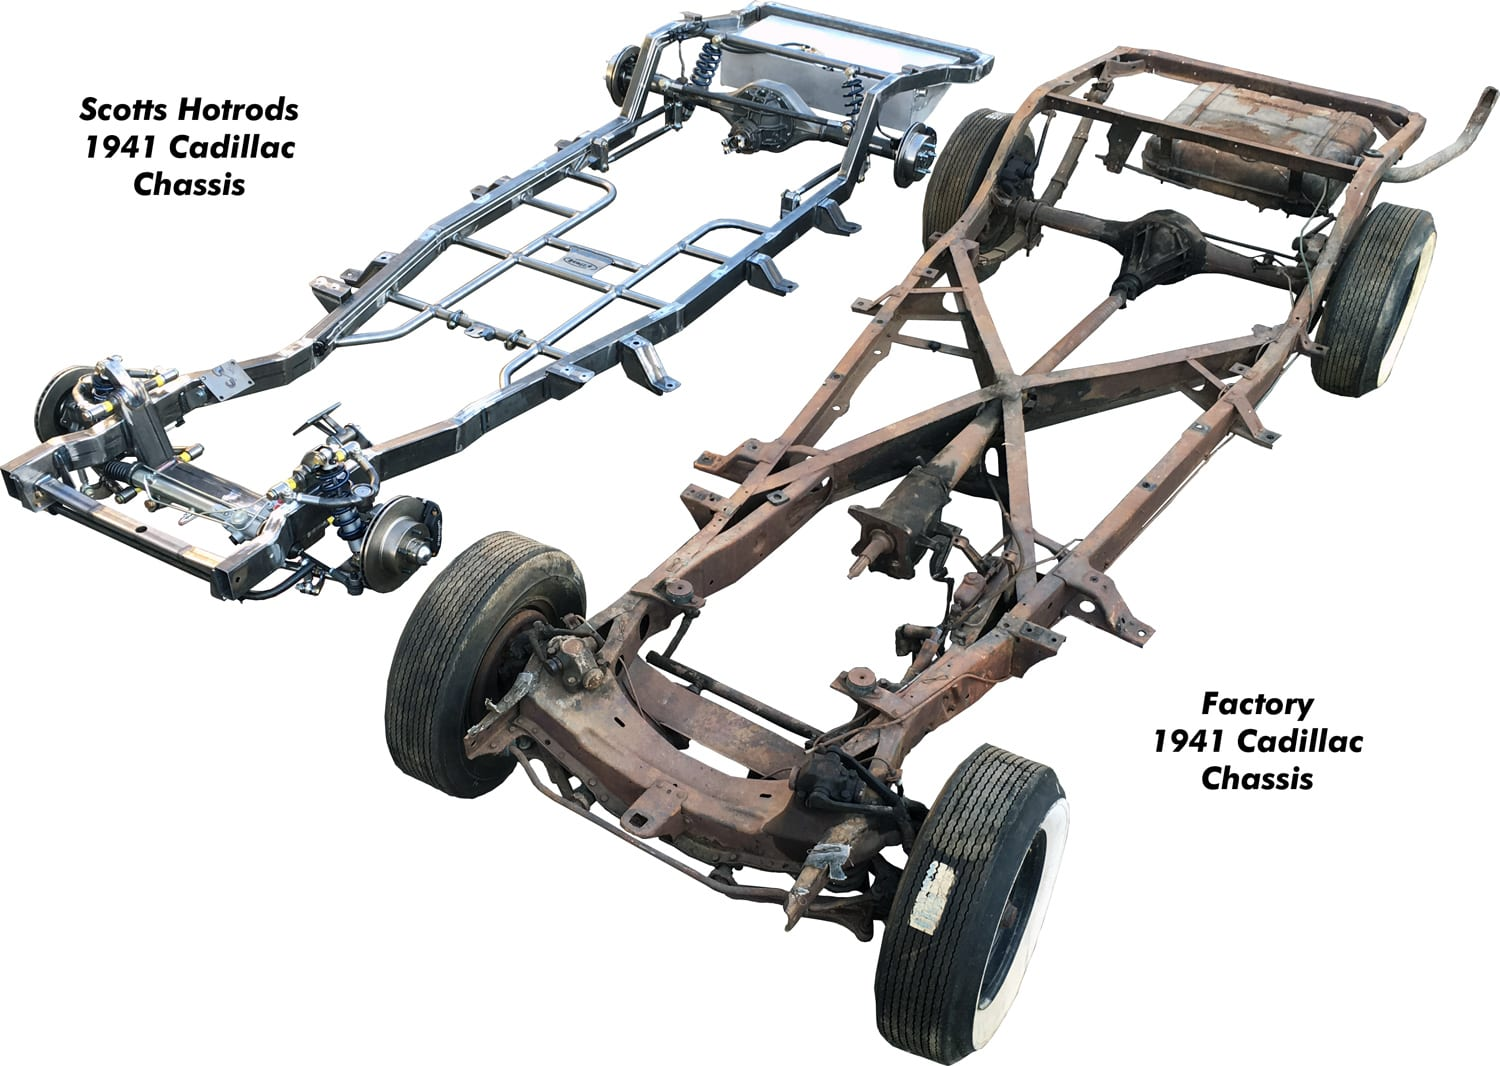 1941 Cadillac Chassis